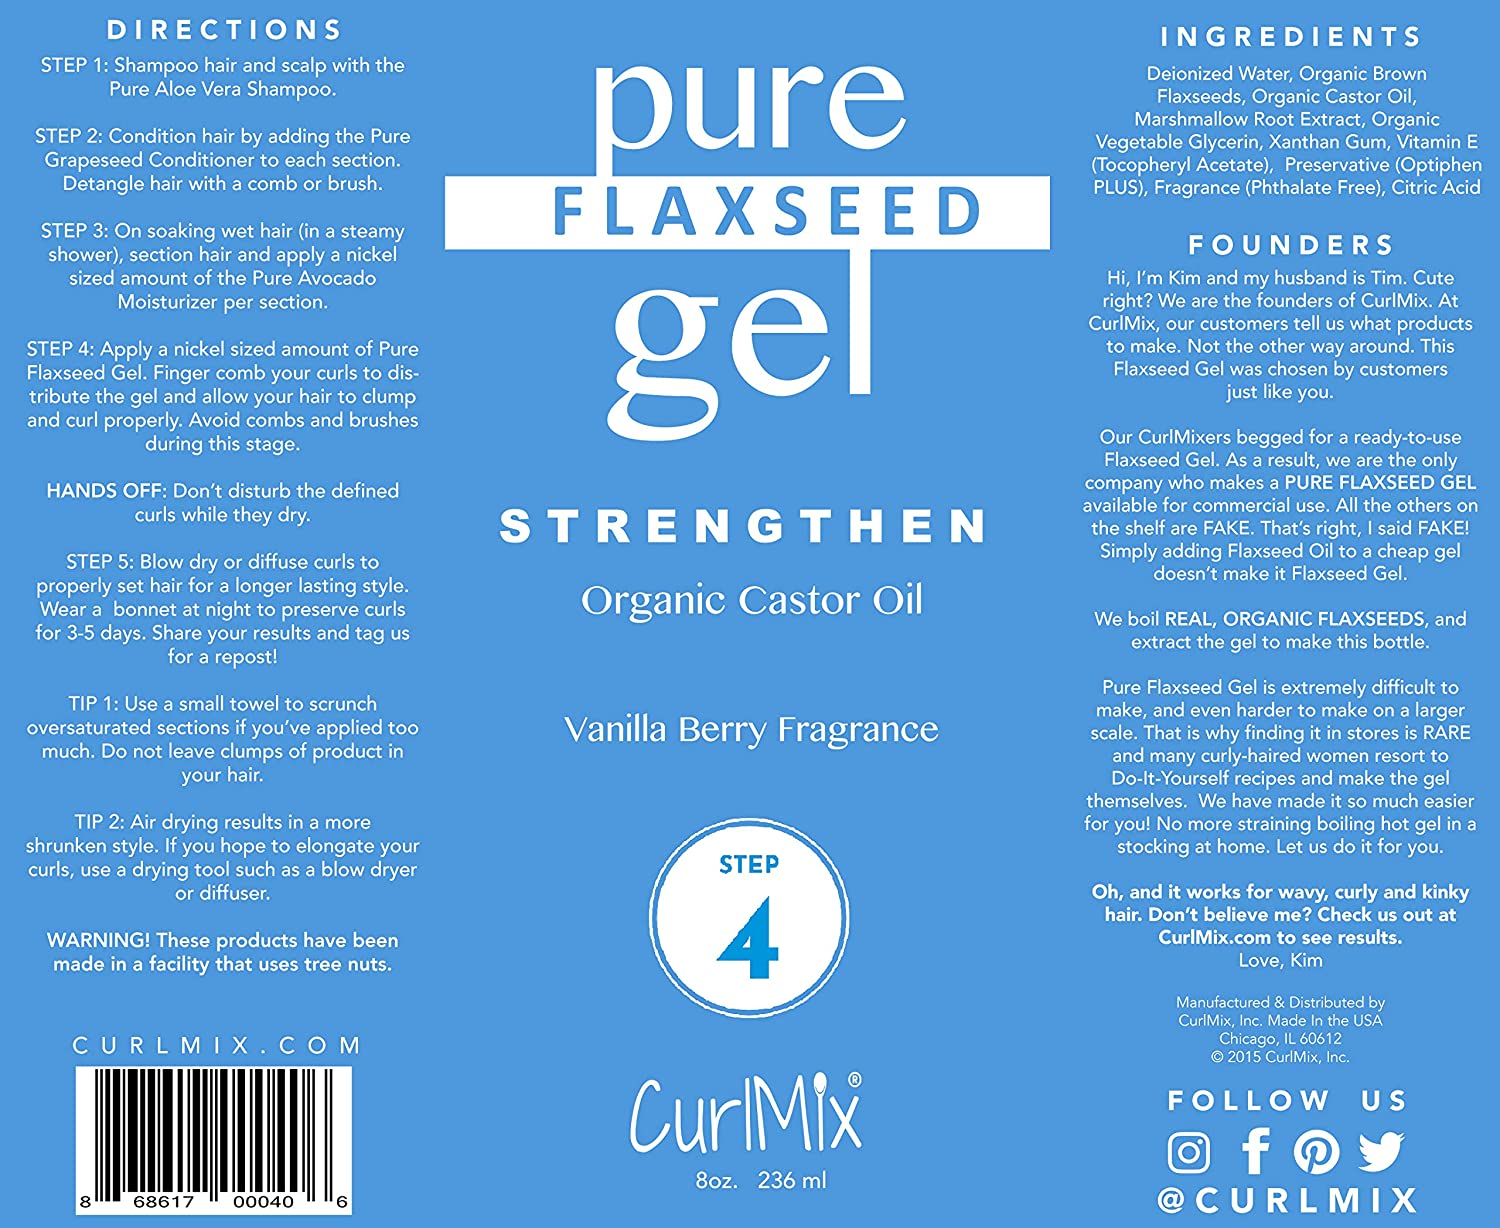 805d53d37cc Amazon.com : Pure Homemade Flaxseed Gel (Vanilla Berry Fragrance & Organic  Castor Oil) As Seen On Shark Tank : Beauty